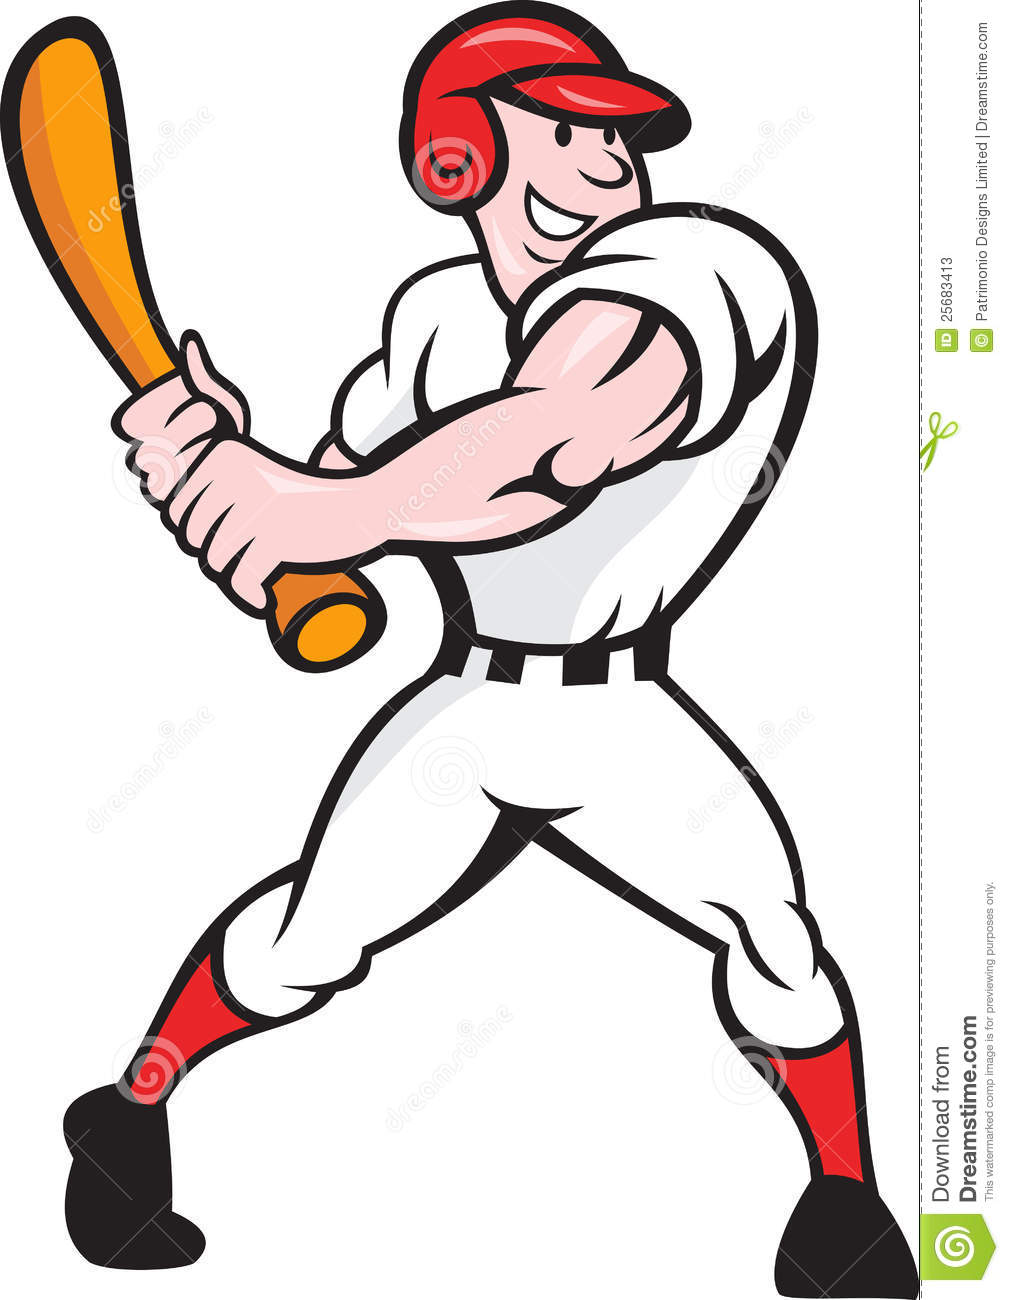 free clipart of a baseball player - photo #42